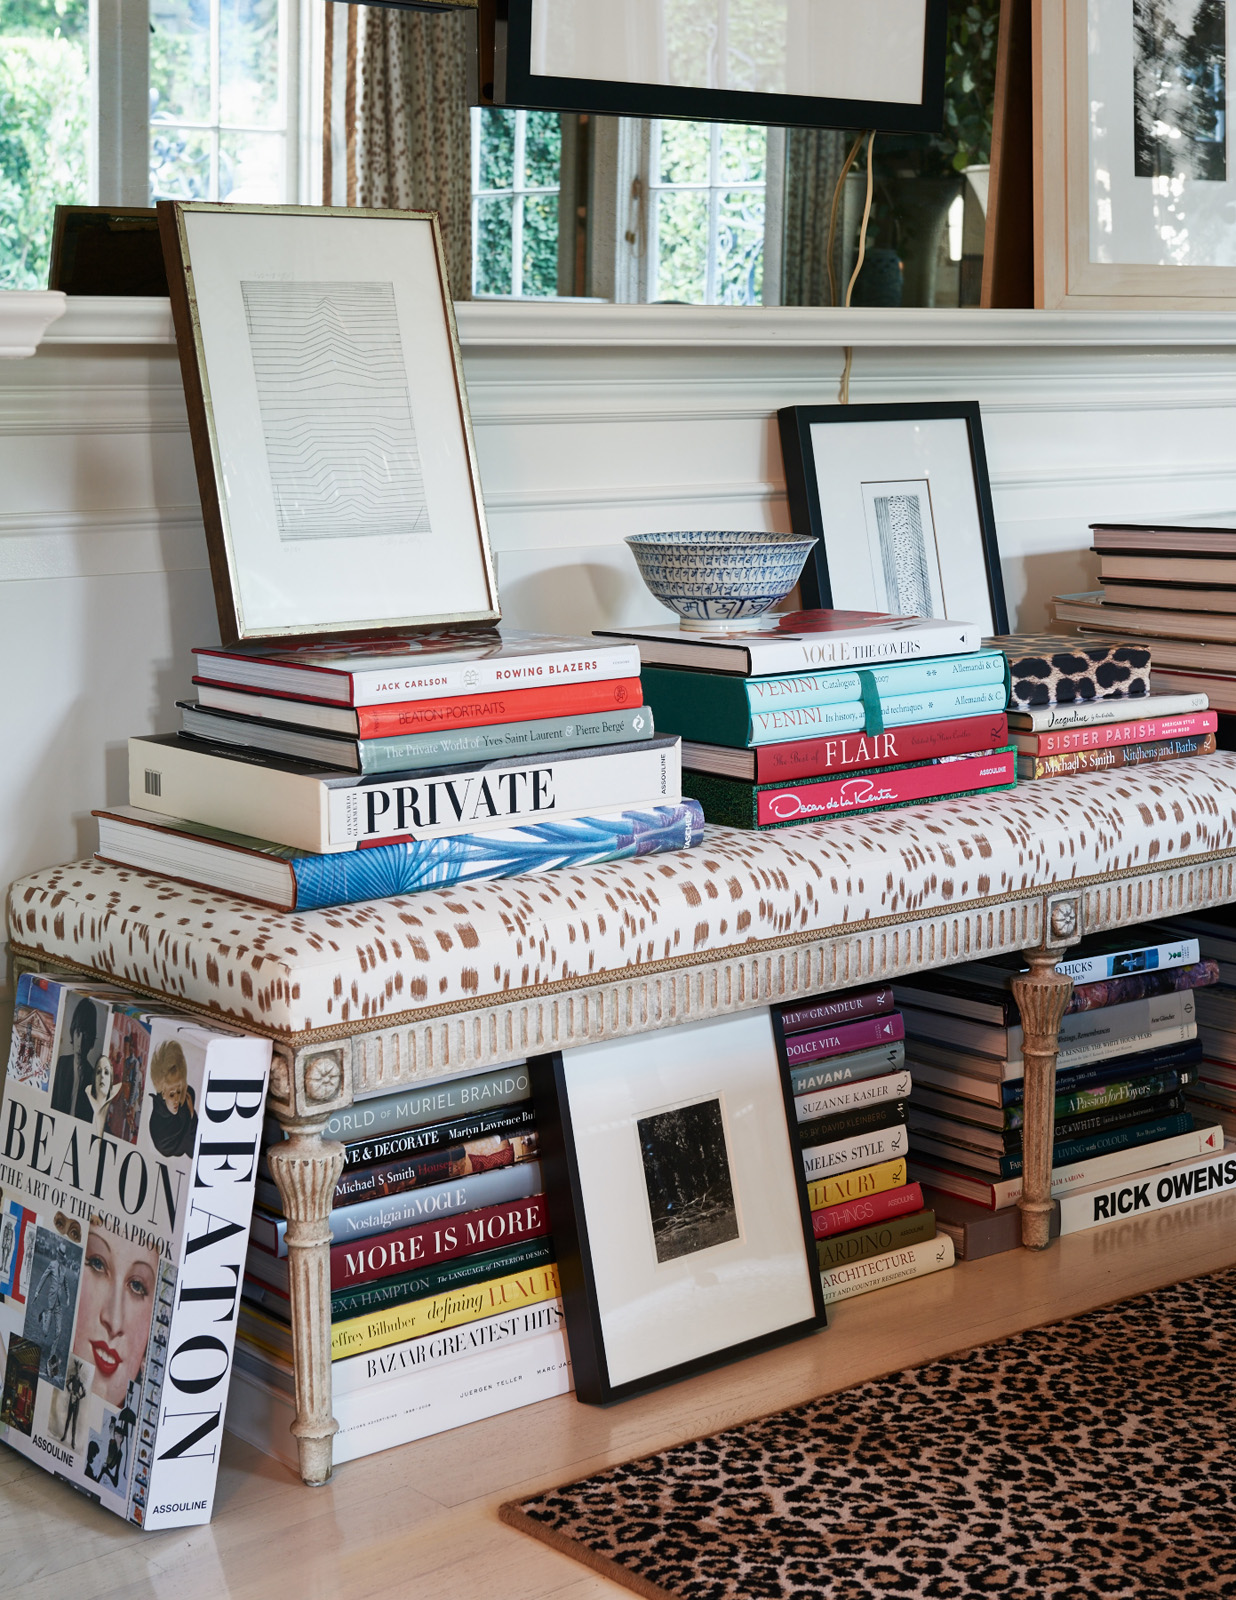 Amazing Deals On Beautiful Interior Design And Gardening Related Books Even A Few Architecture Photography Theres Great Selection